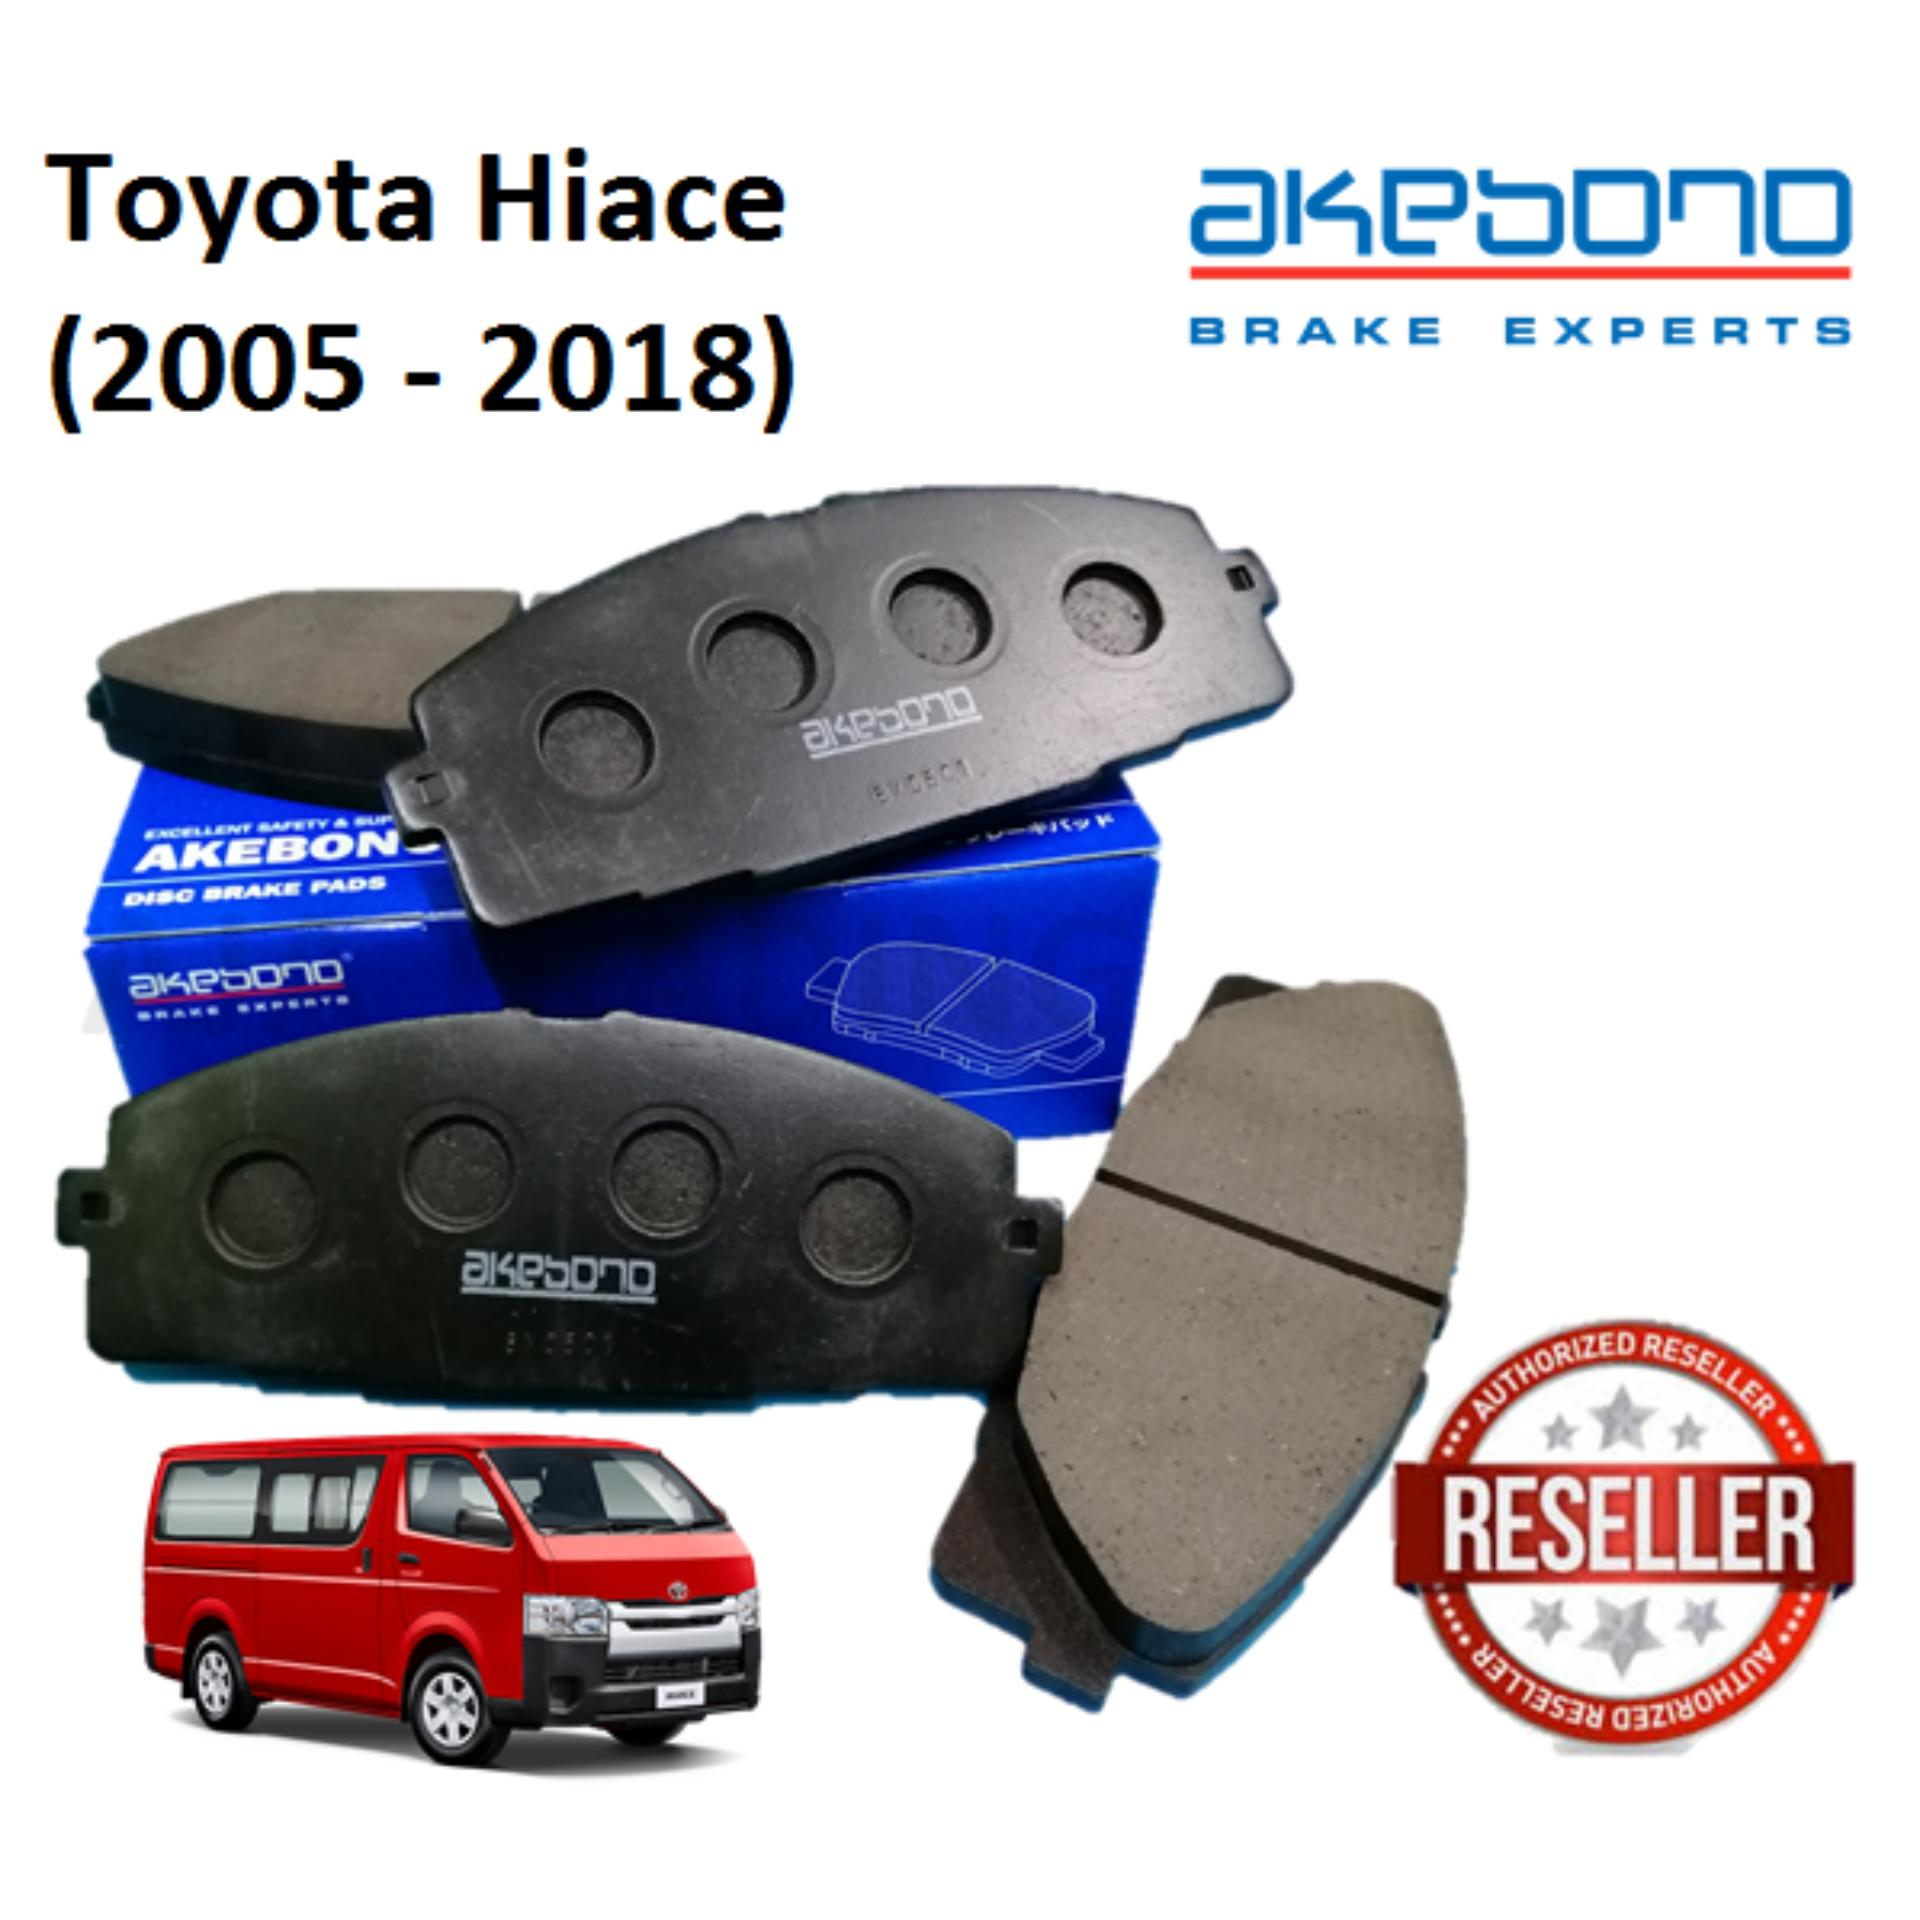 Genuine Akebono Front Brake Pads for Toyota Hiace (2005 - 2018)